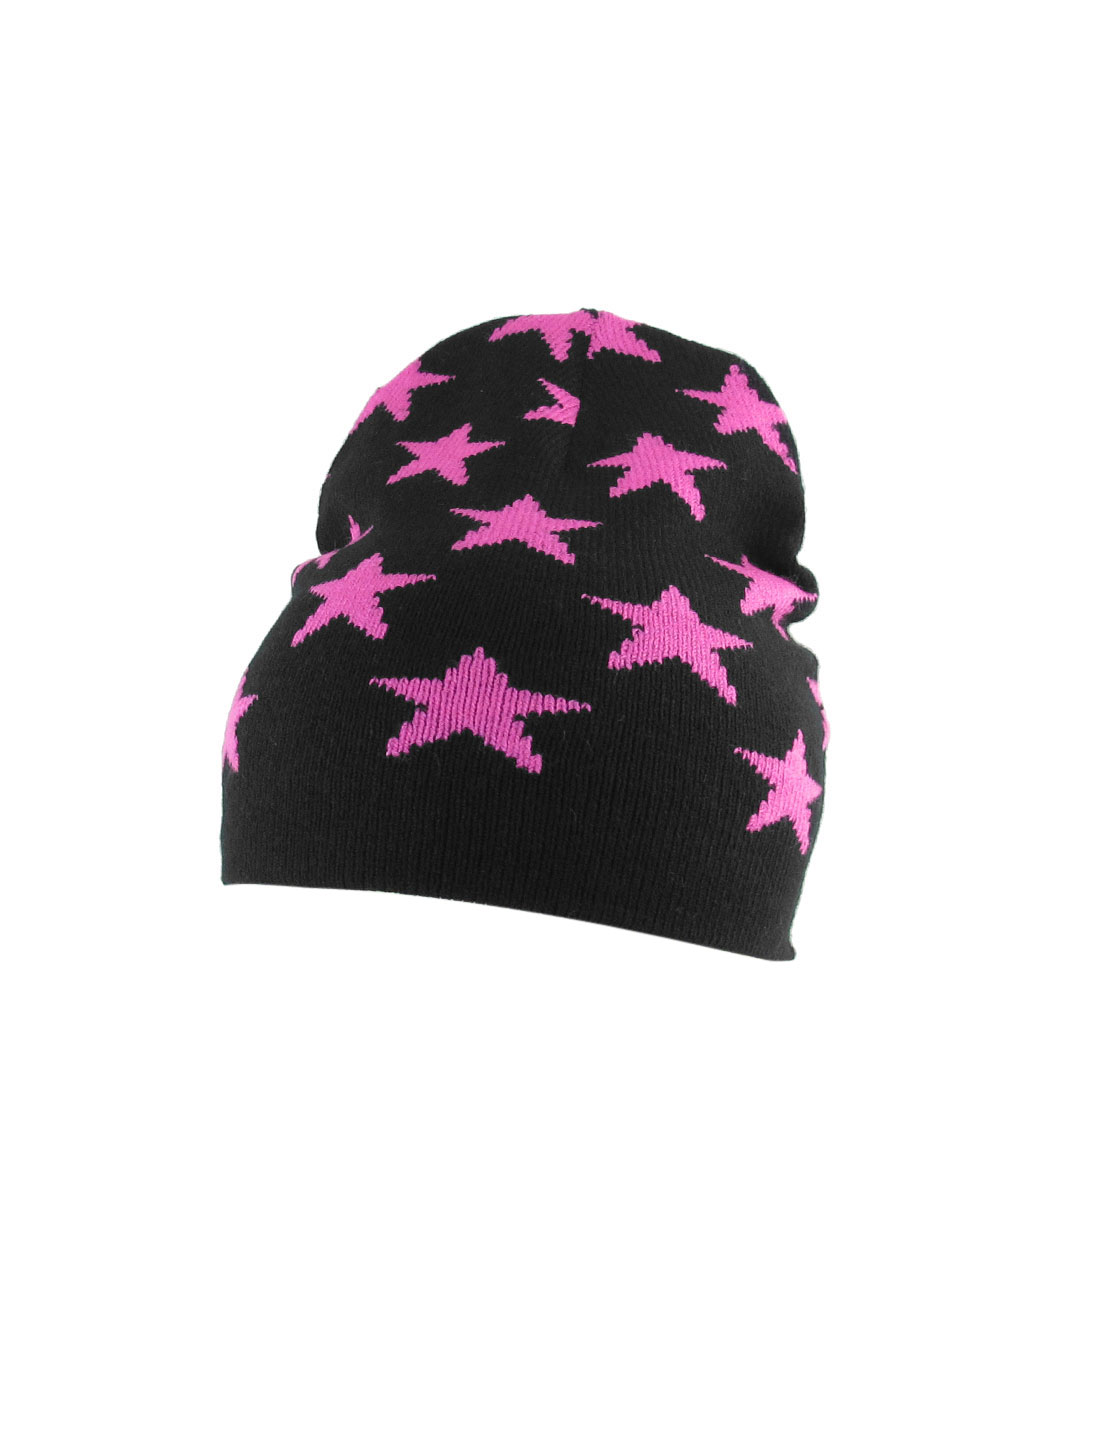 Pink Stars Print Black Knitted Elastic Skull Beanie Hat for Ladies